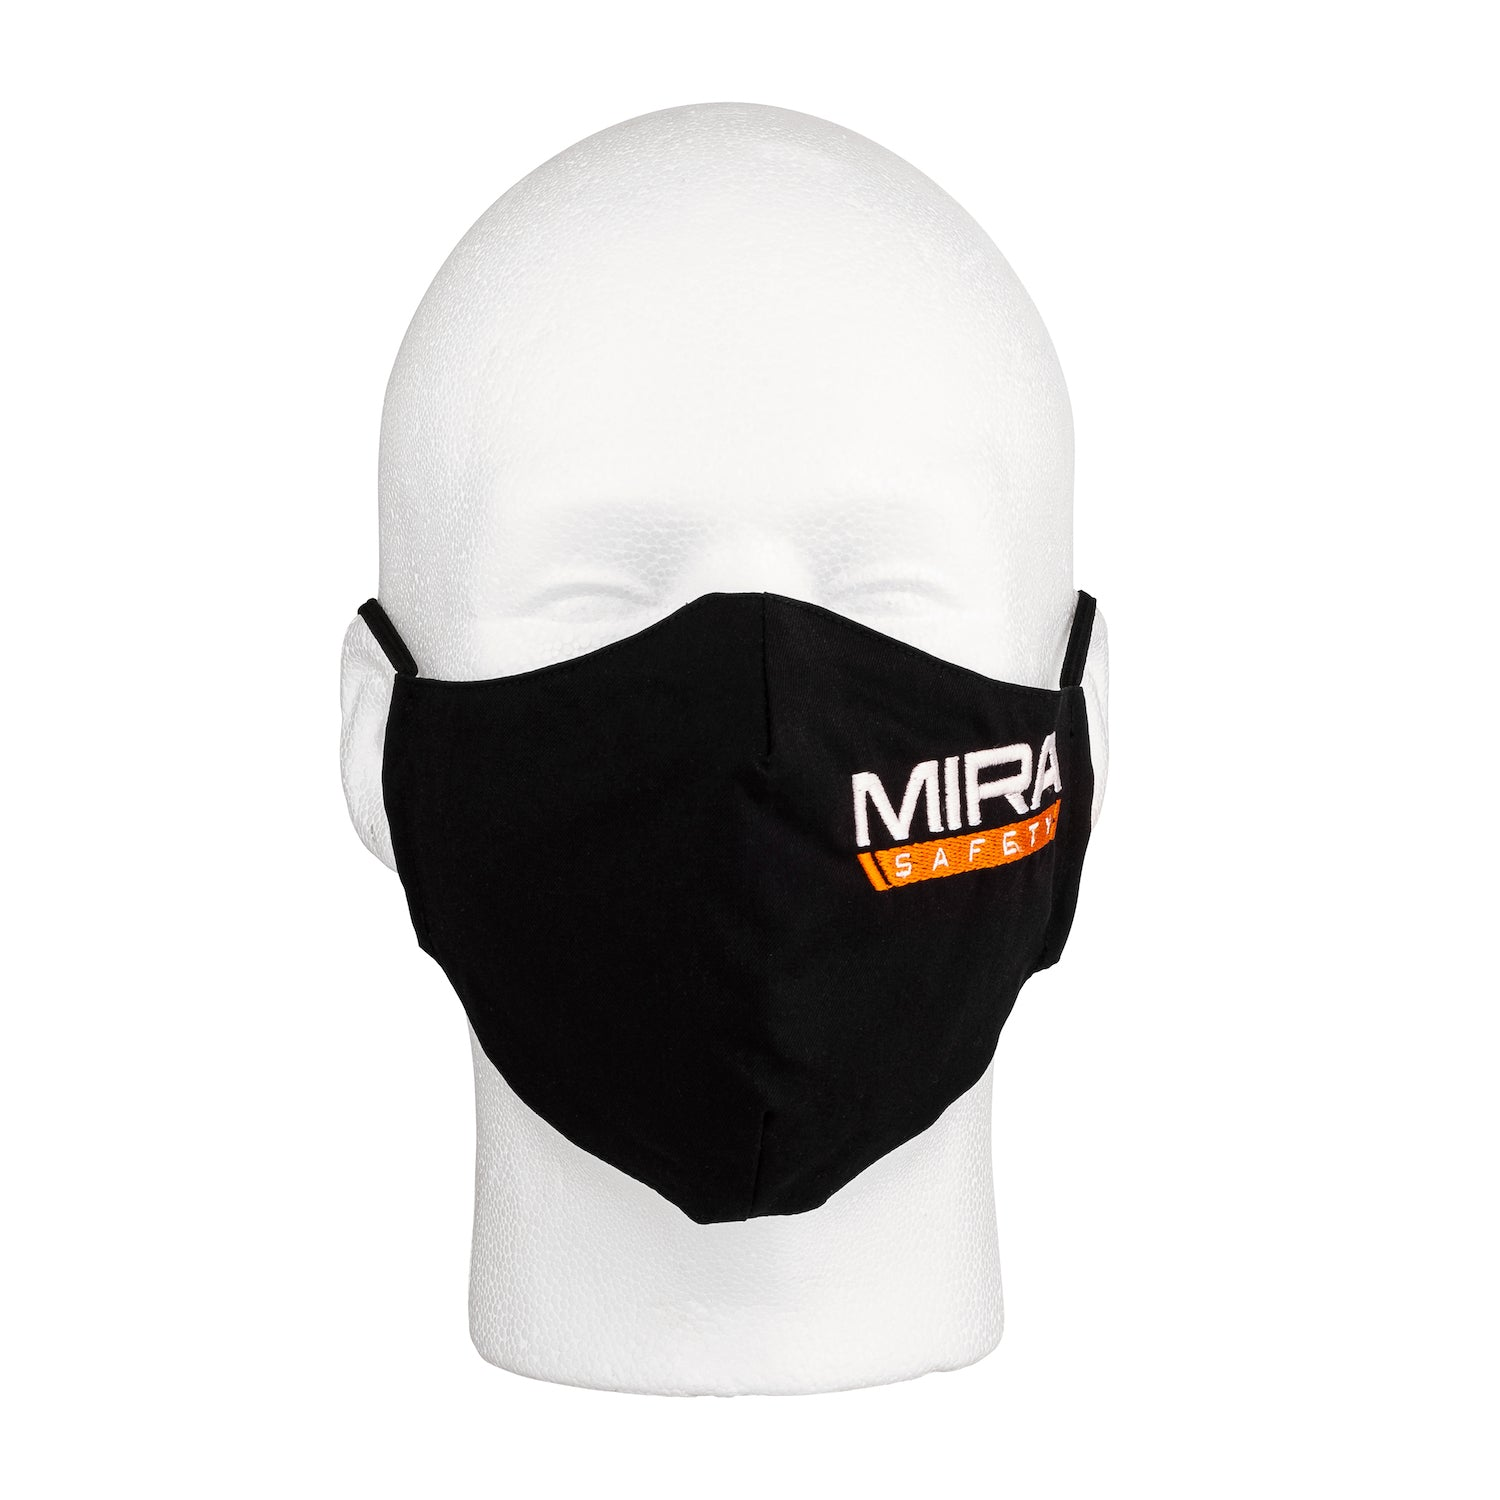 Front view of the MIRA Safety Mask with the classic logo on a mannequin head